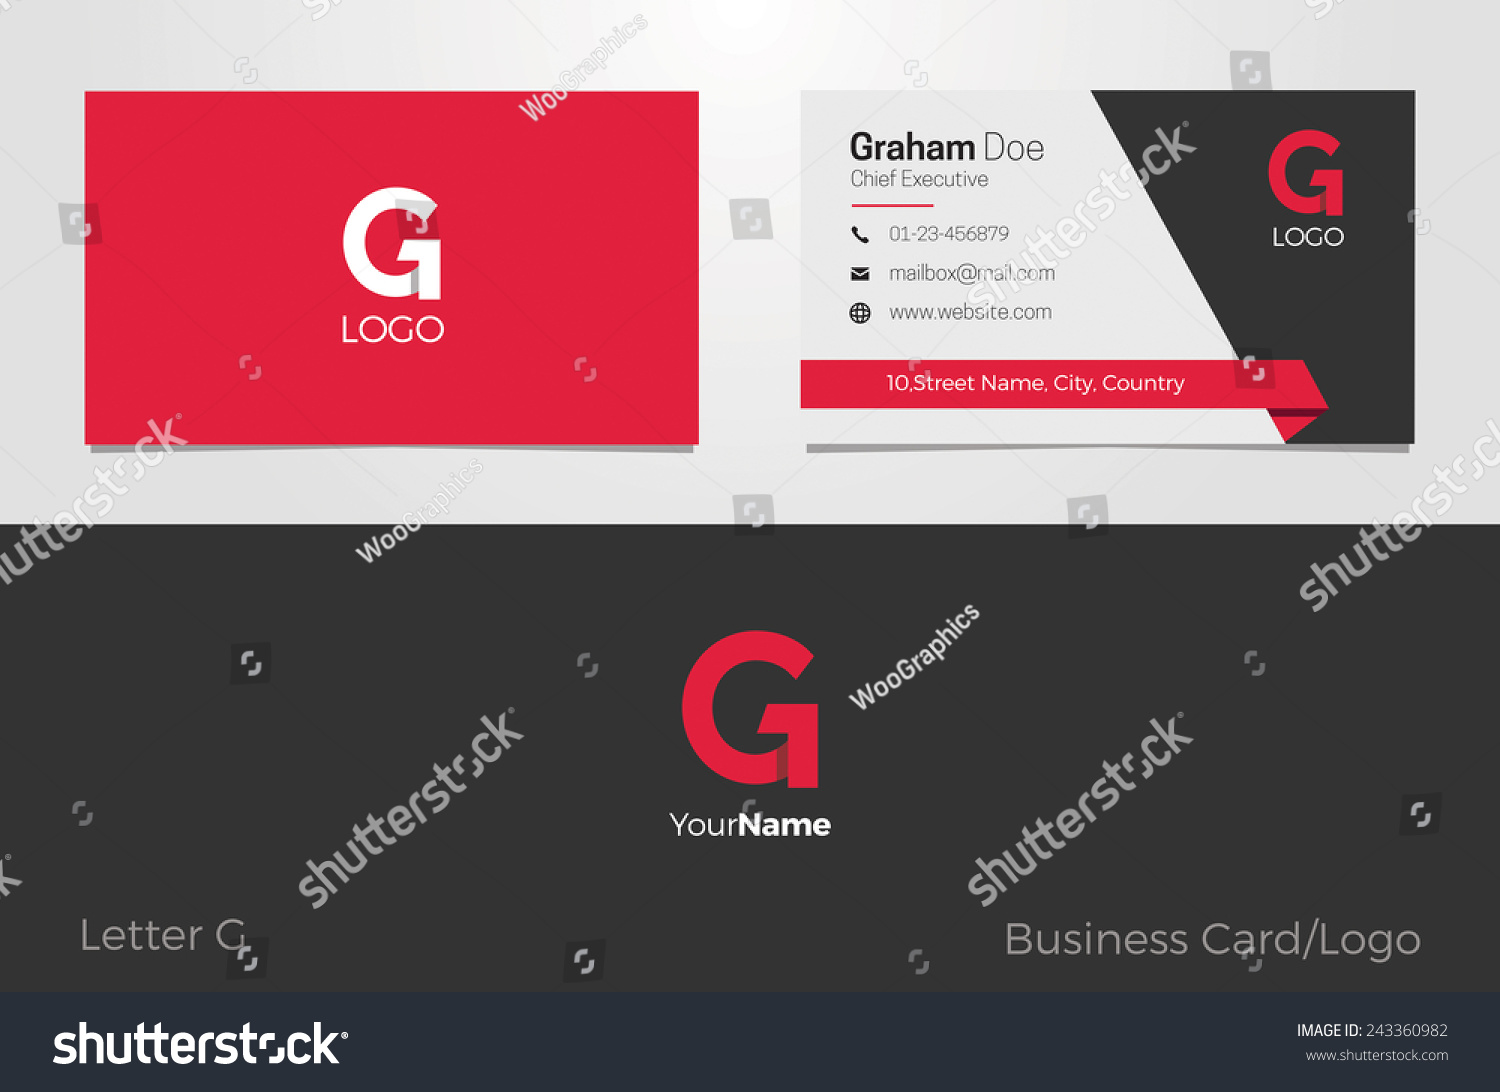 G letter logo corporate business card stock vector 243360982 g letter logo corporate business card colourmoves